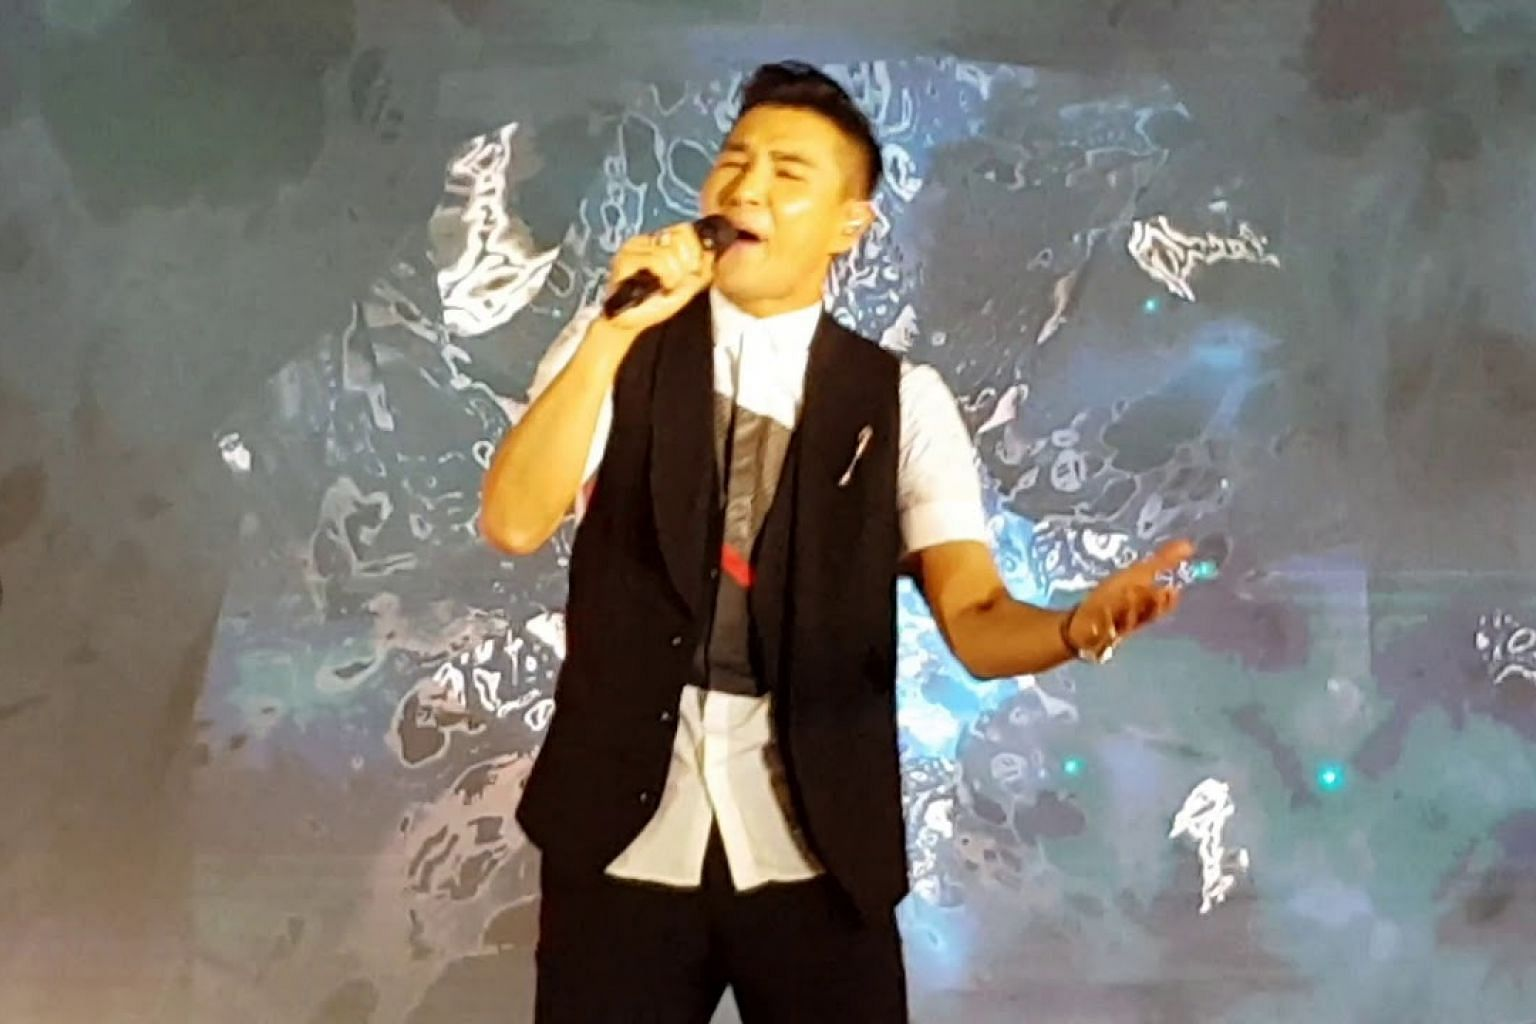 Ruco Chan performs at Ngee Ann City Civic Plaza